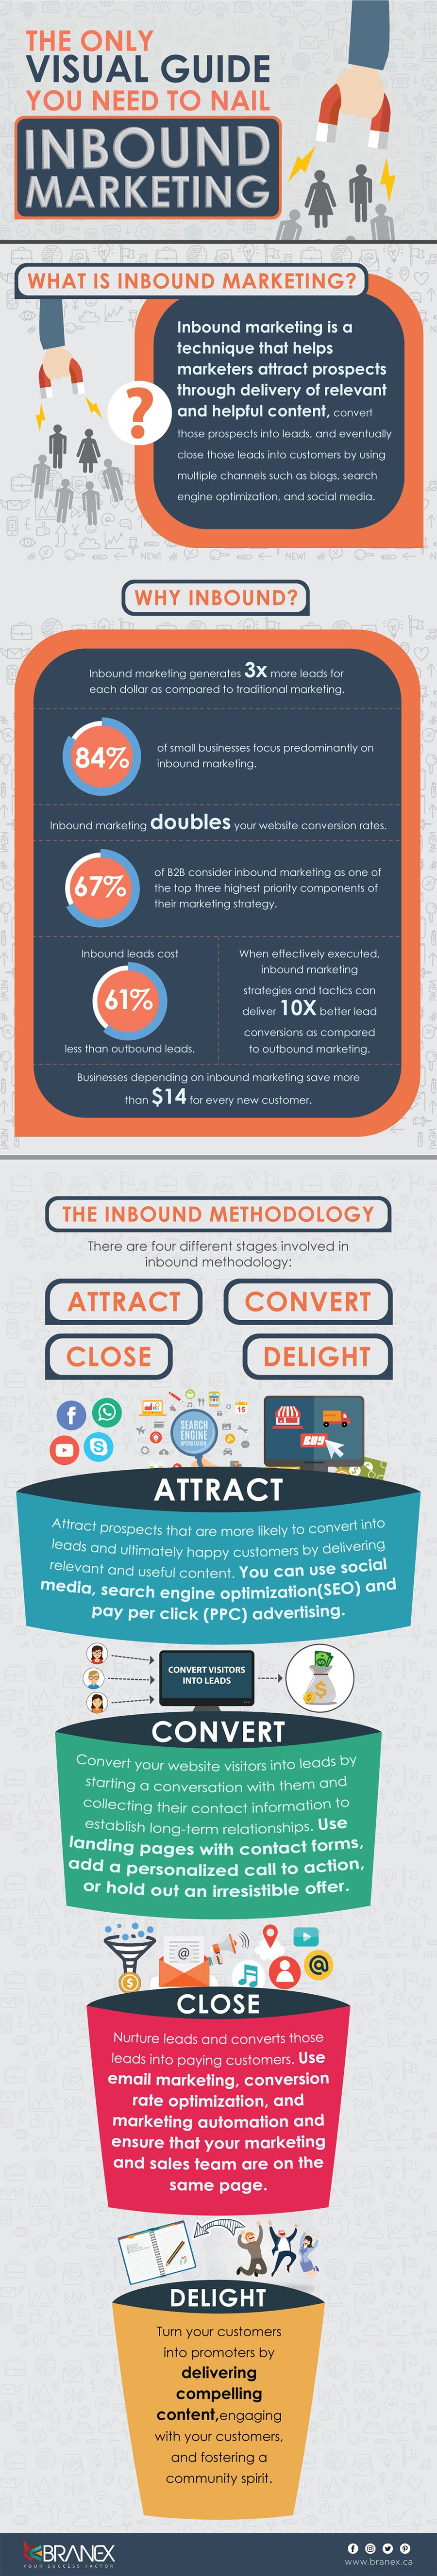 Inbound Marketing Basics: How to Attract & Convert Website Visitors [Infographic] | Social Media Today